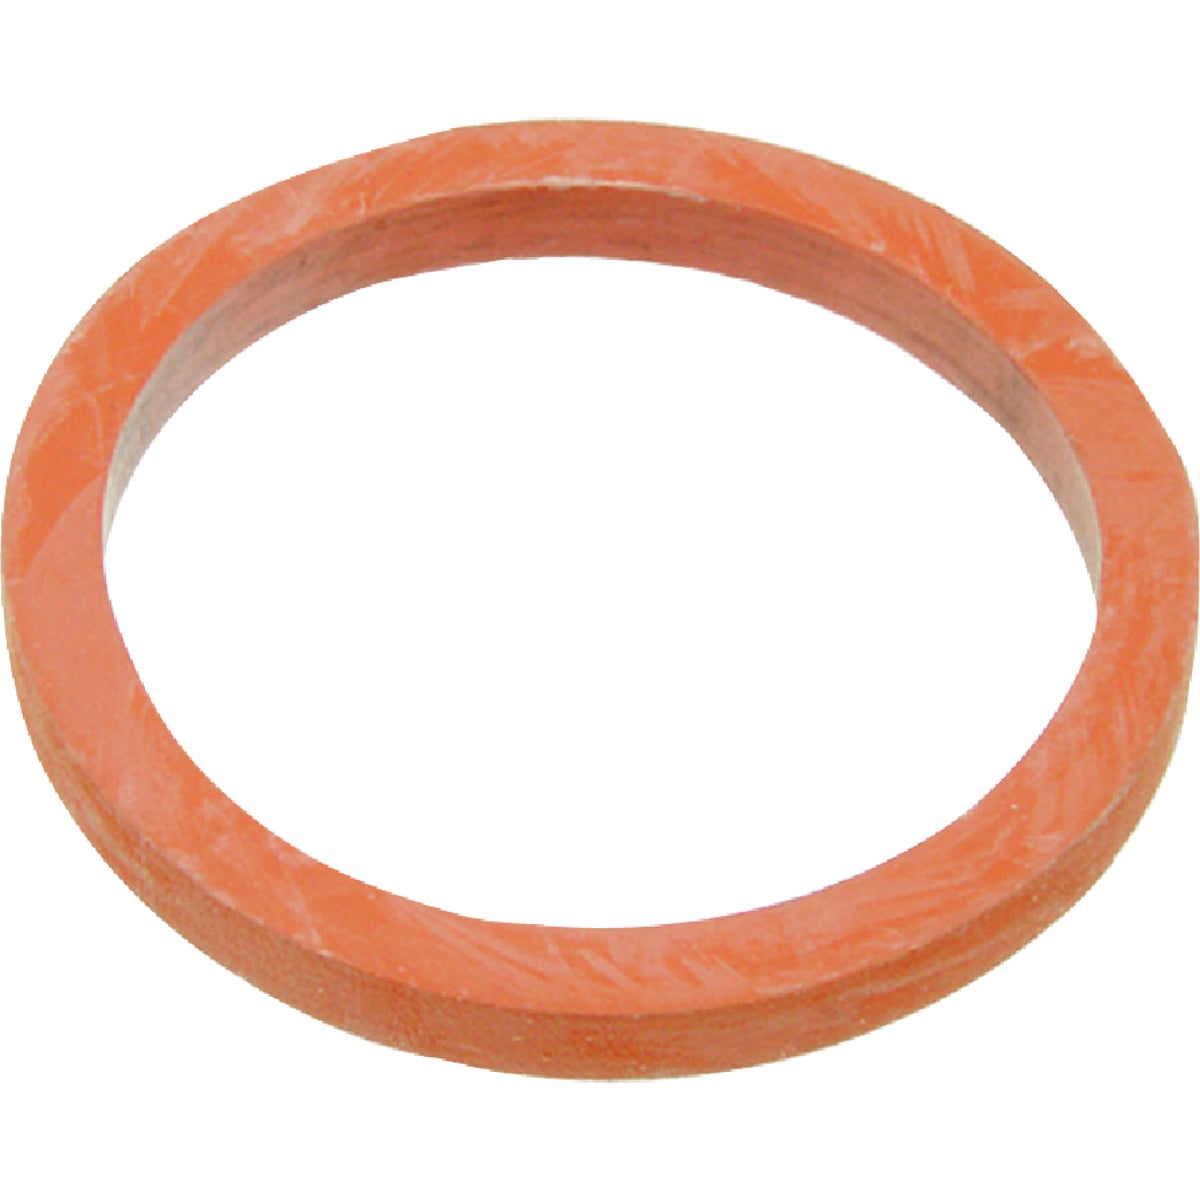 RUBBER SLIP JOINT WASHER